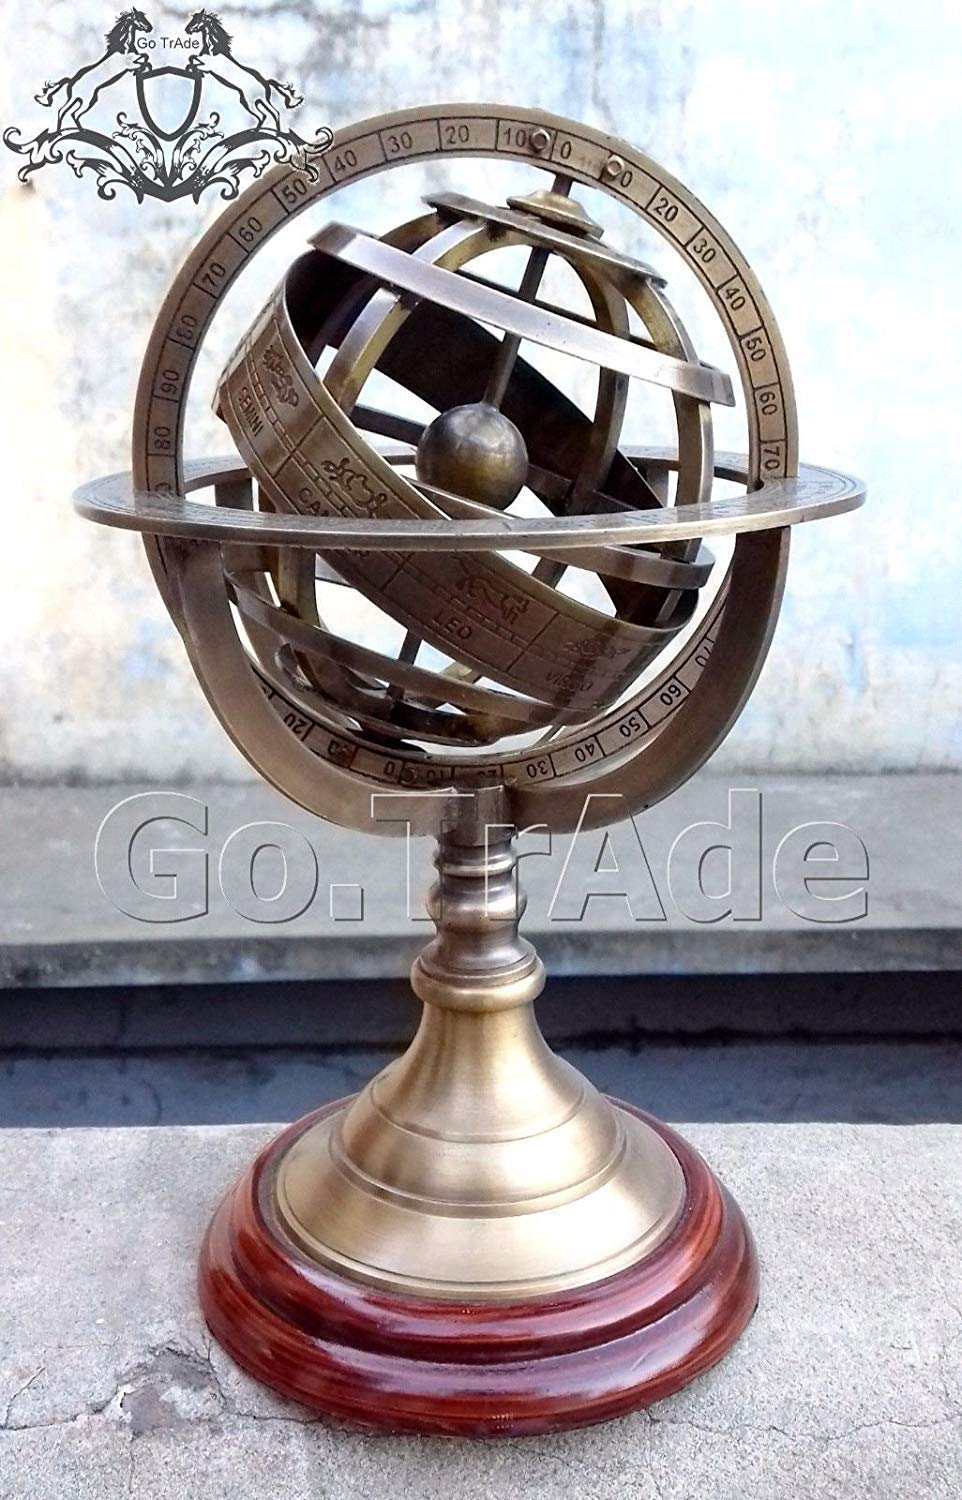 classical.gift.export Details About 8.5'' Engraved Brass Tabletop Armillary Nautical Sphere Globes